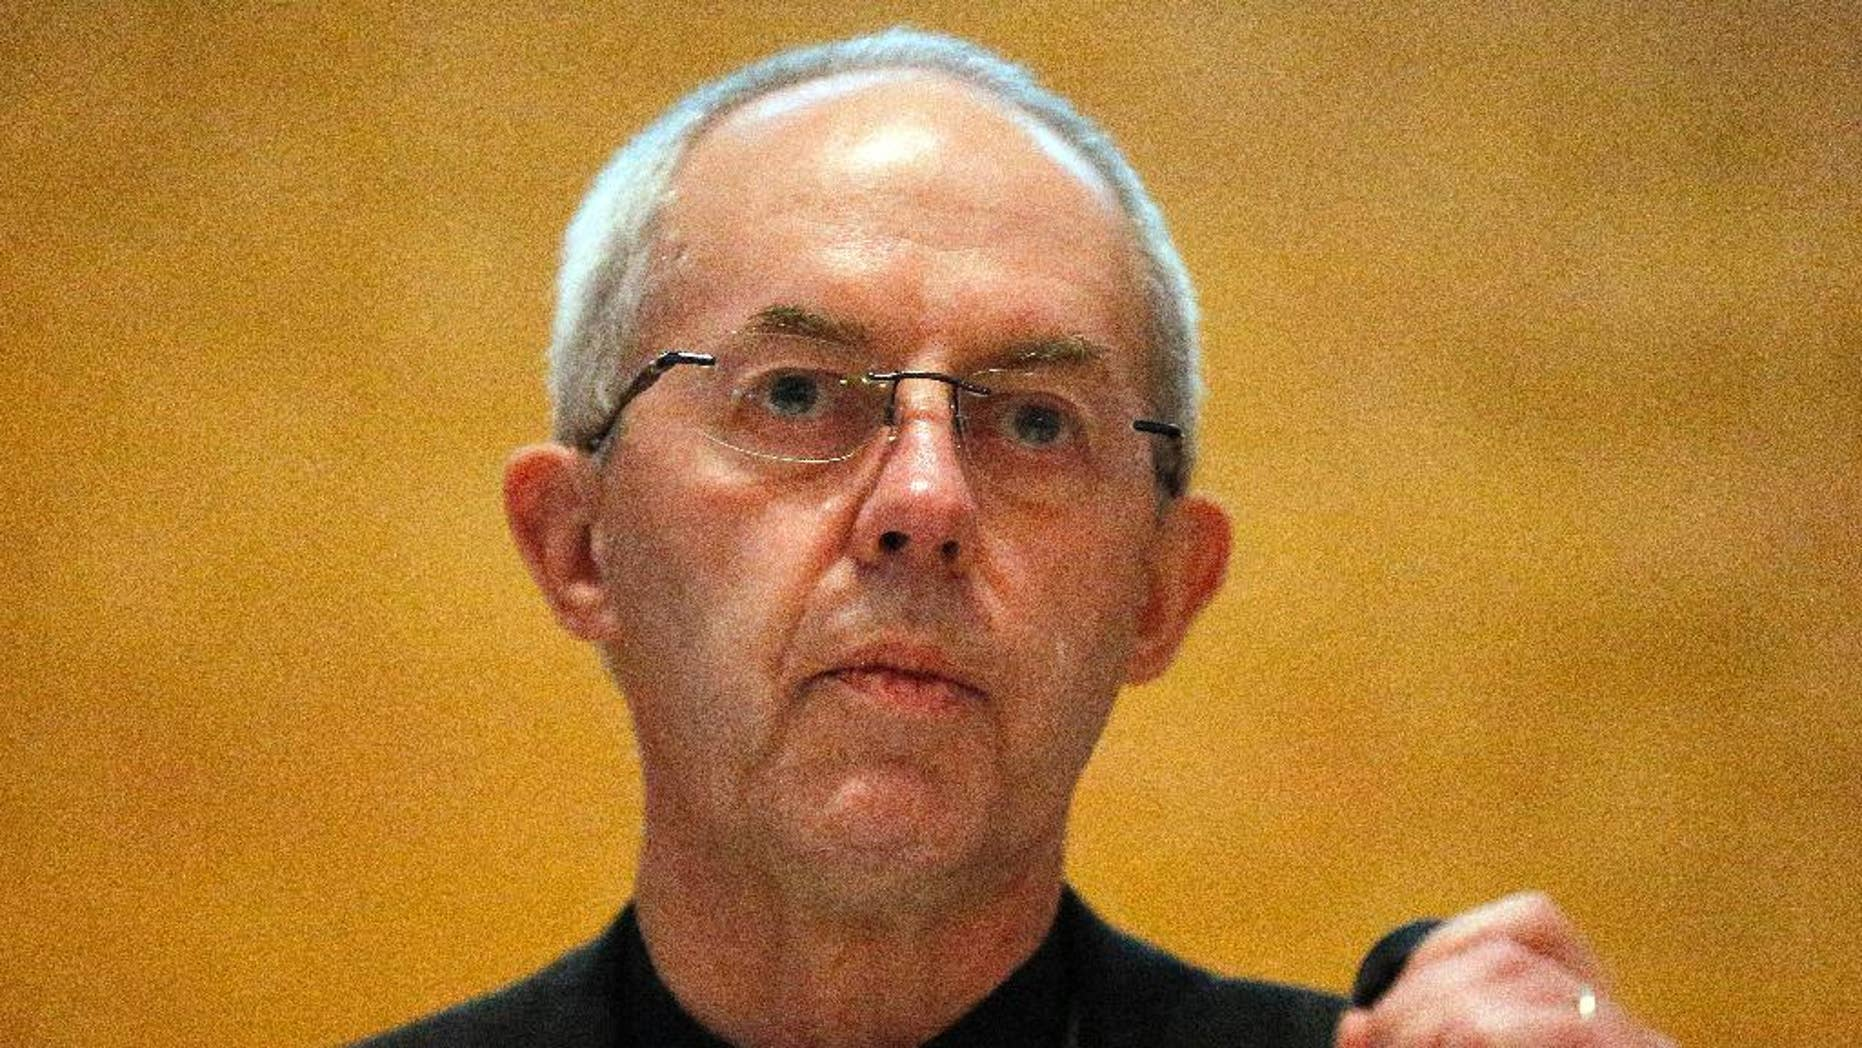 FILE- In this Friday, Jan. 15, 2016 file photo, the Archbishop of Canterbury, Justin Welby, addresses the media during a press conference in Canterbury, England. The archbishop of Canterbury said, Saturday, April 9, 2016, DNA tests have identified his real father, but the revelation hasn't shaken his sense of identity. (AP Photo/Frank Augstein, File)